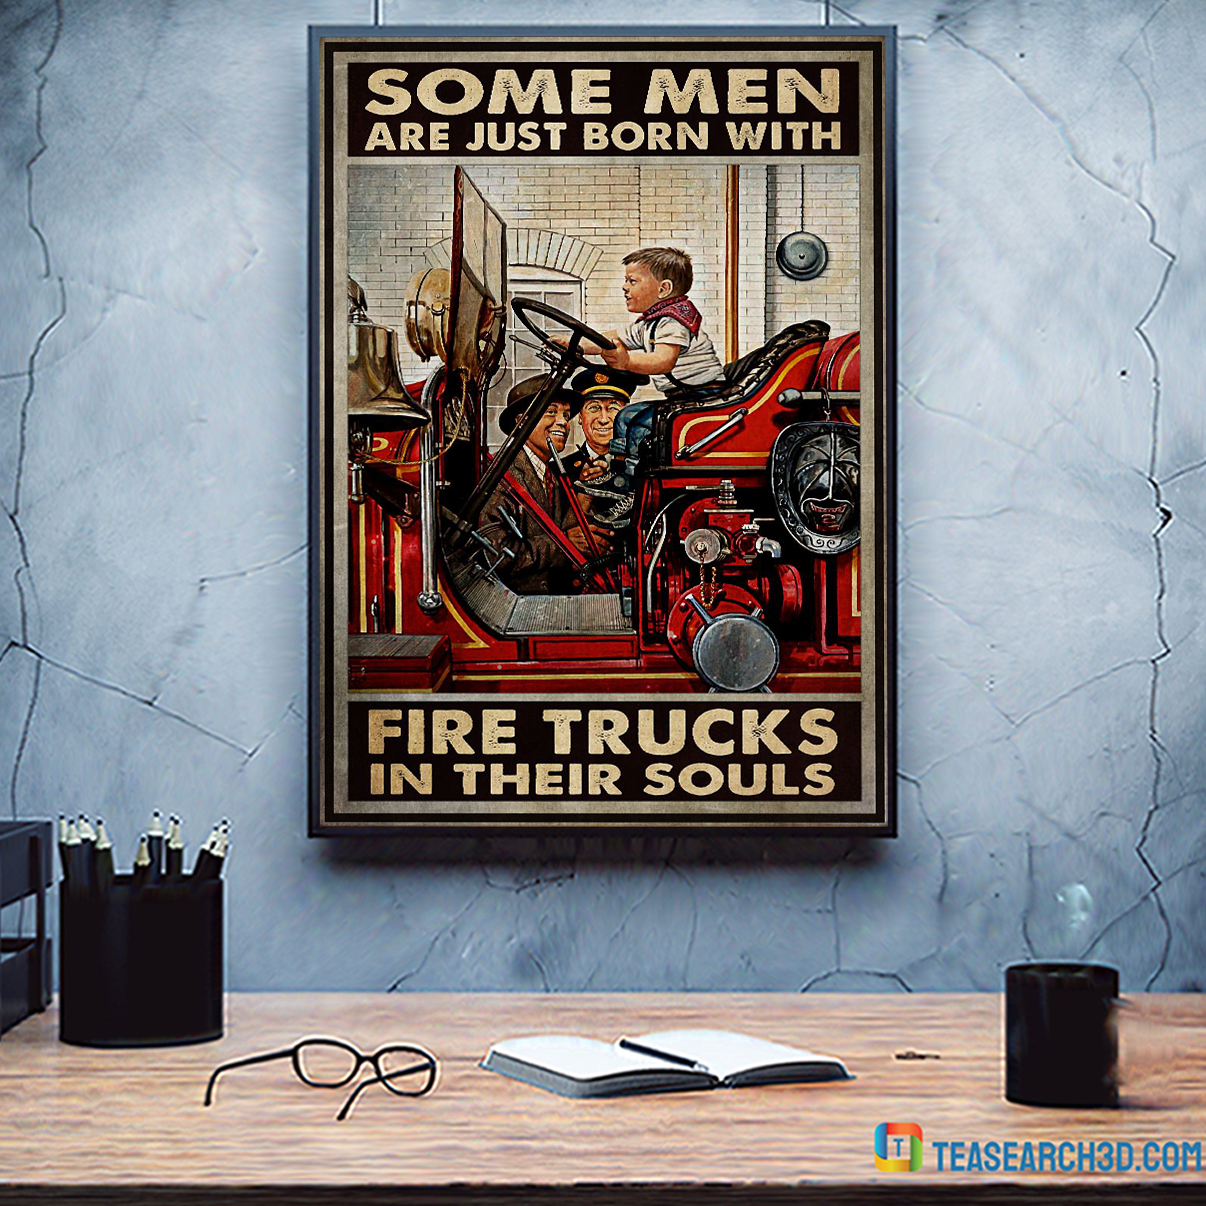 Some men are just born with fire trucks in their souls poster A3